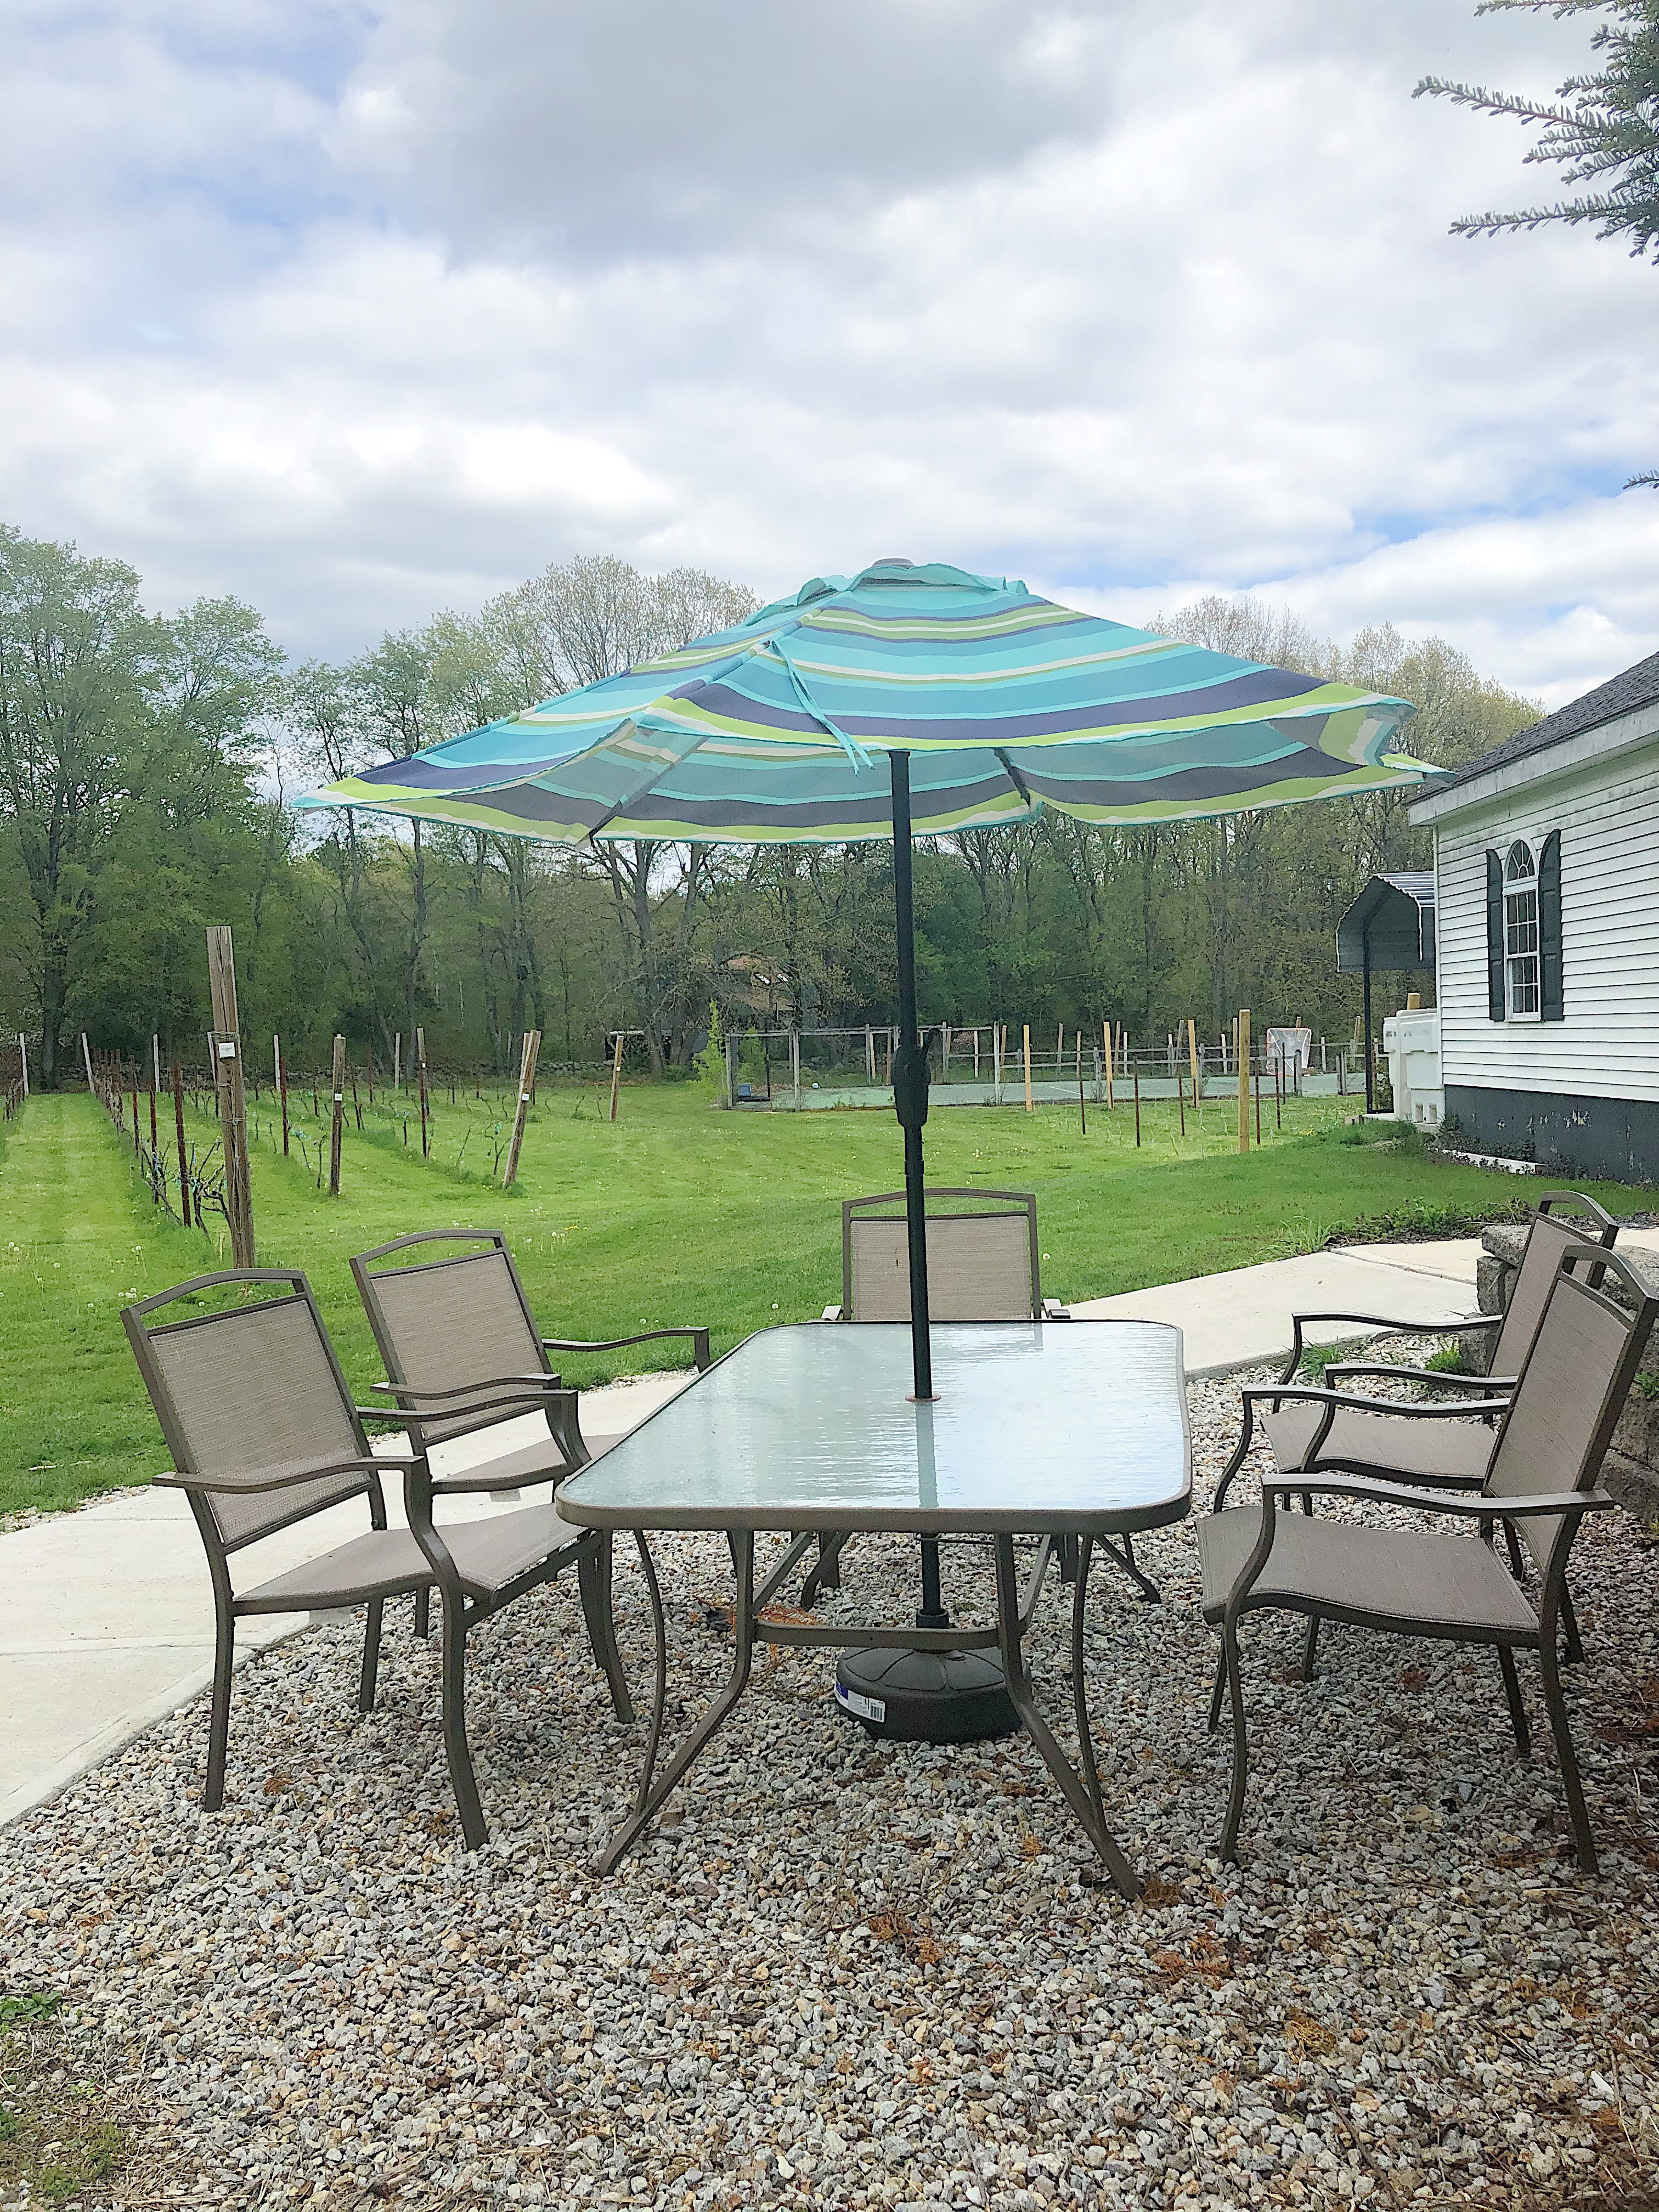 Outdoor Table for up to 5 People